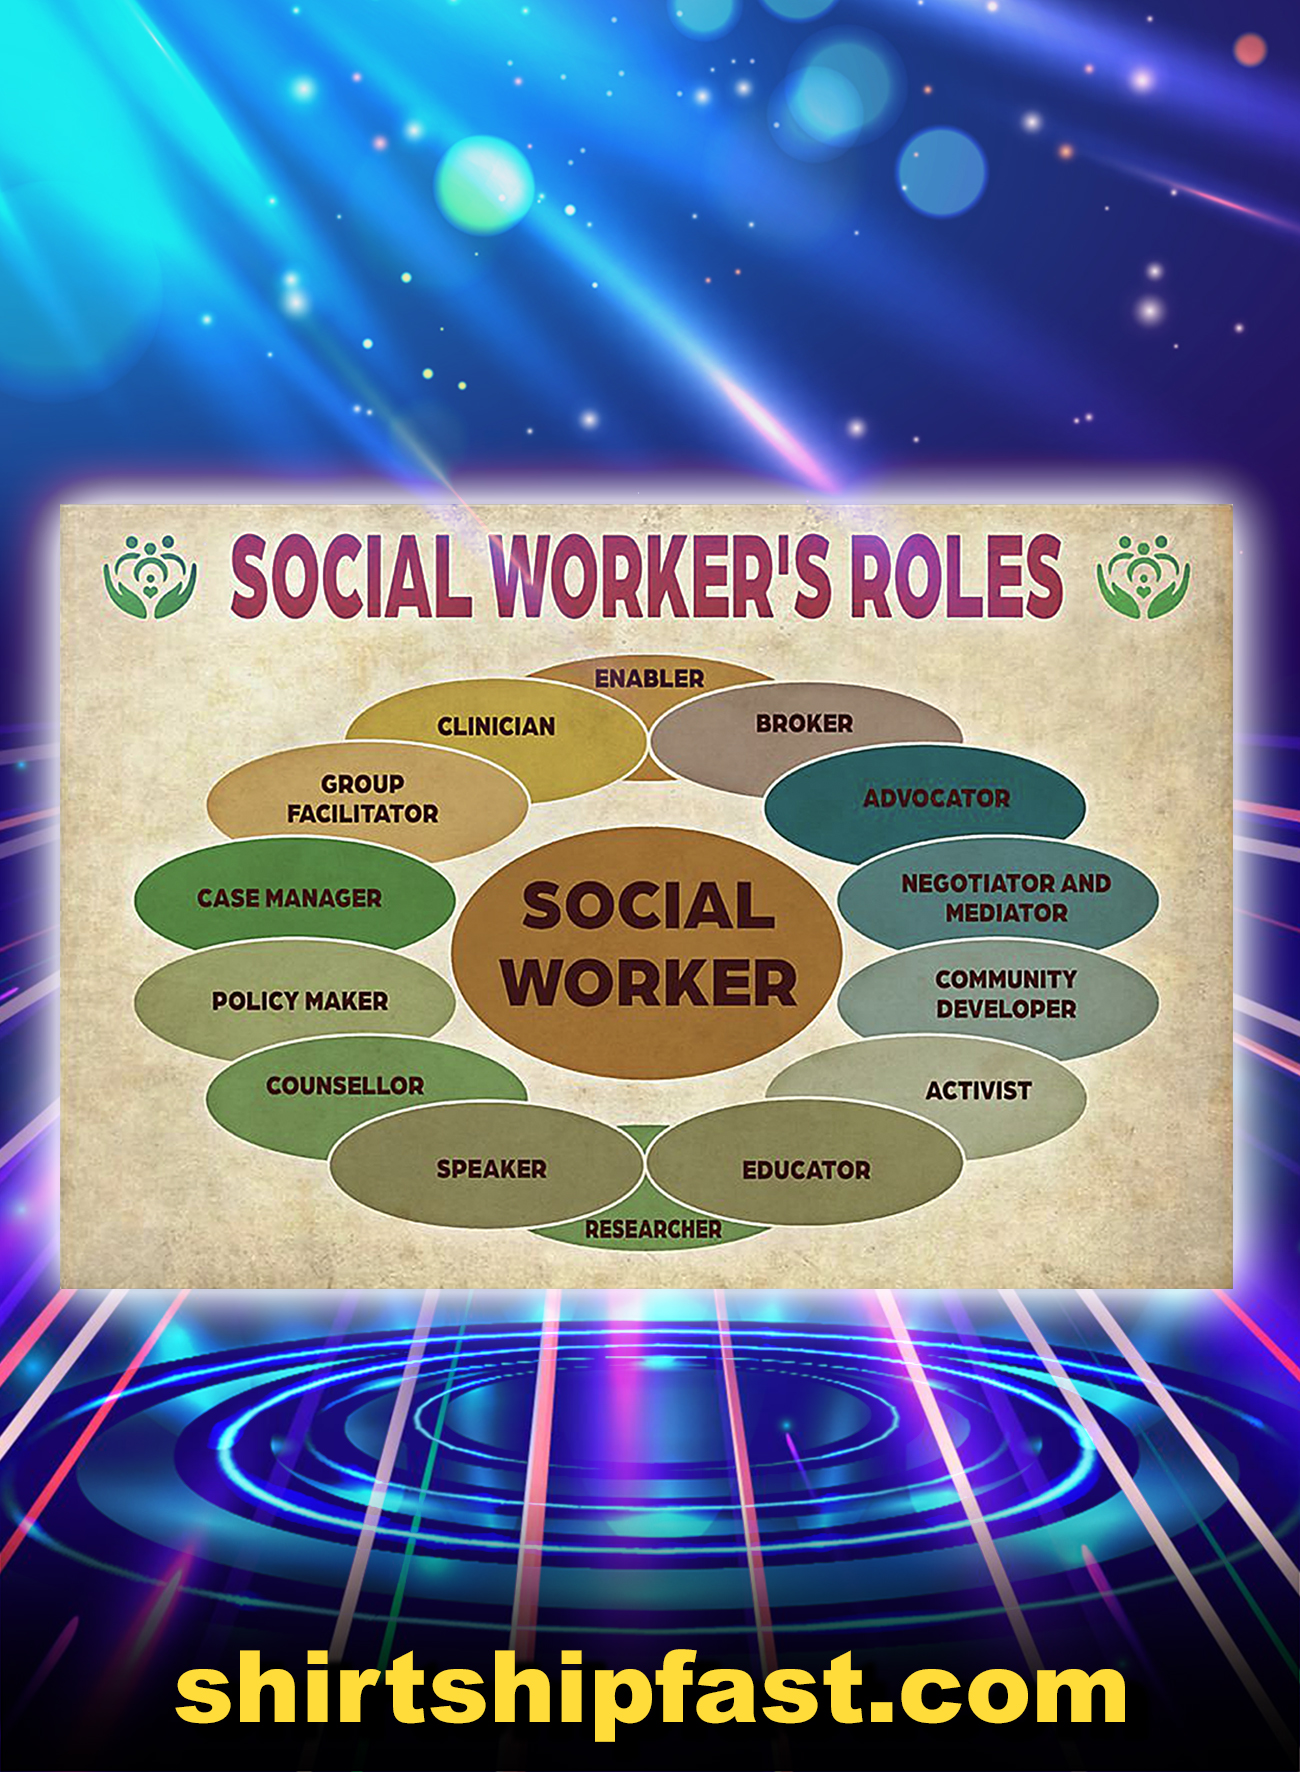 Social worker's roles poster - A4